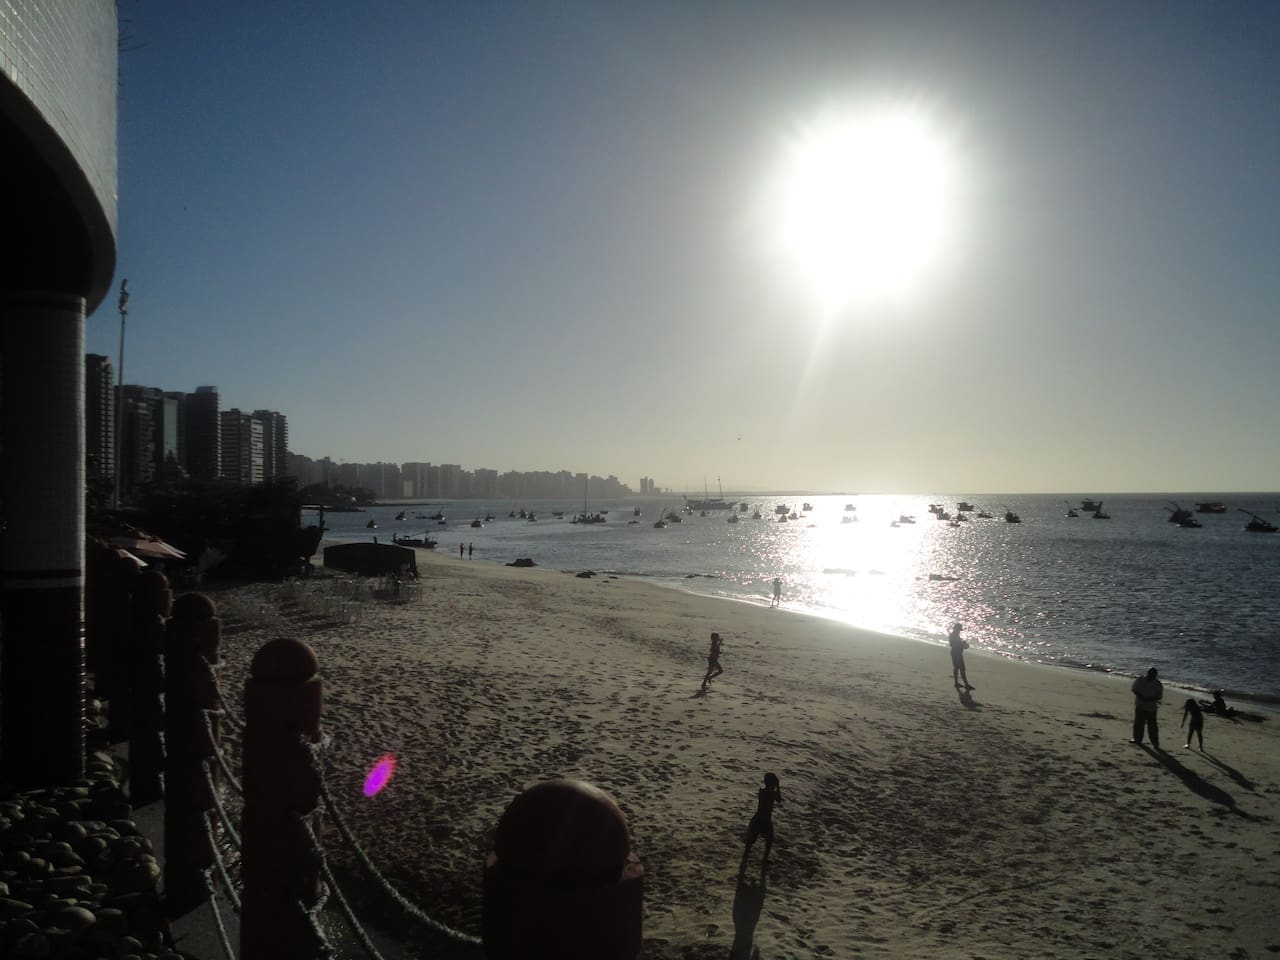 Wonderful view from swimming pool on the most famous street in town: Beira Mar